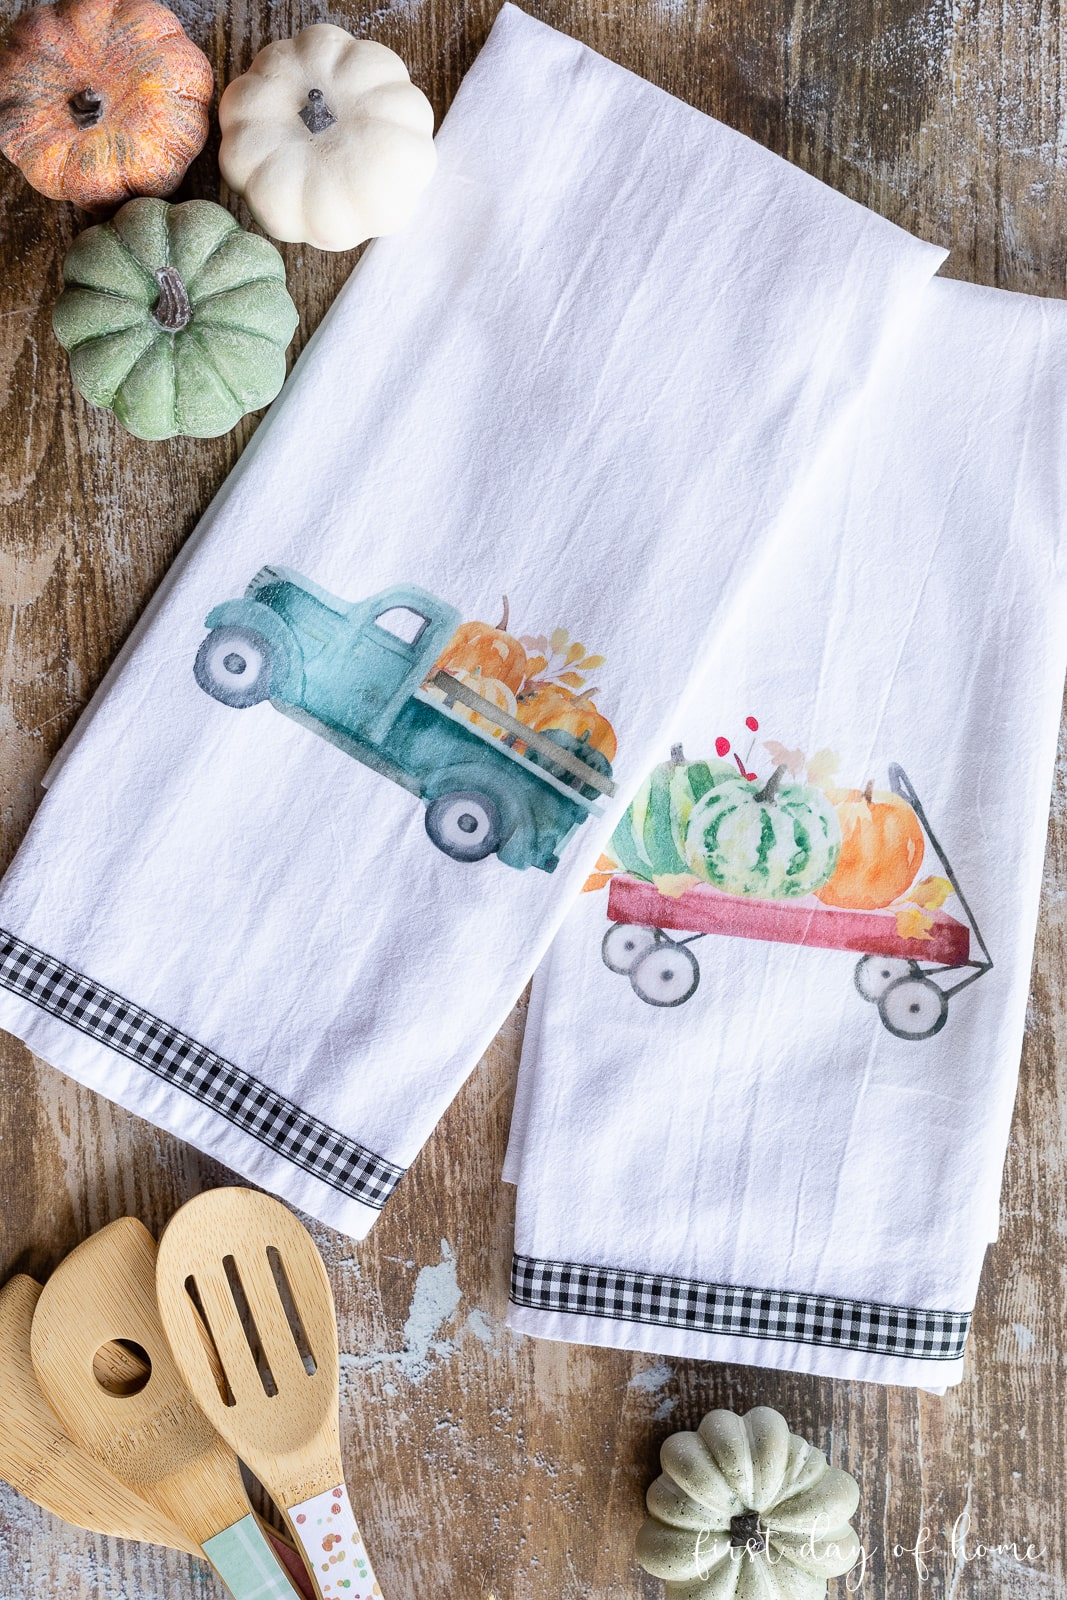 DIY tea towels with farmhouse style graphics of trucks and wagons with pumpkins